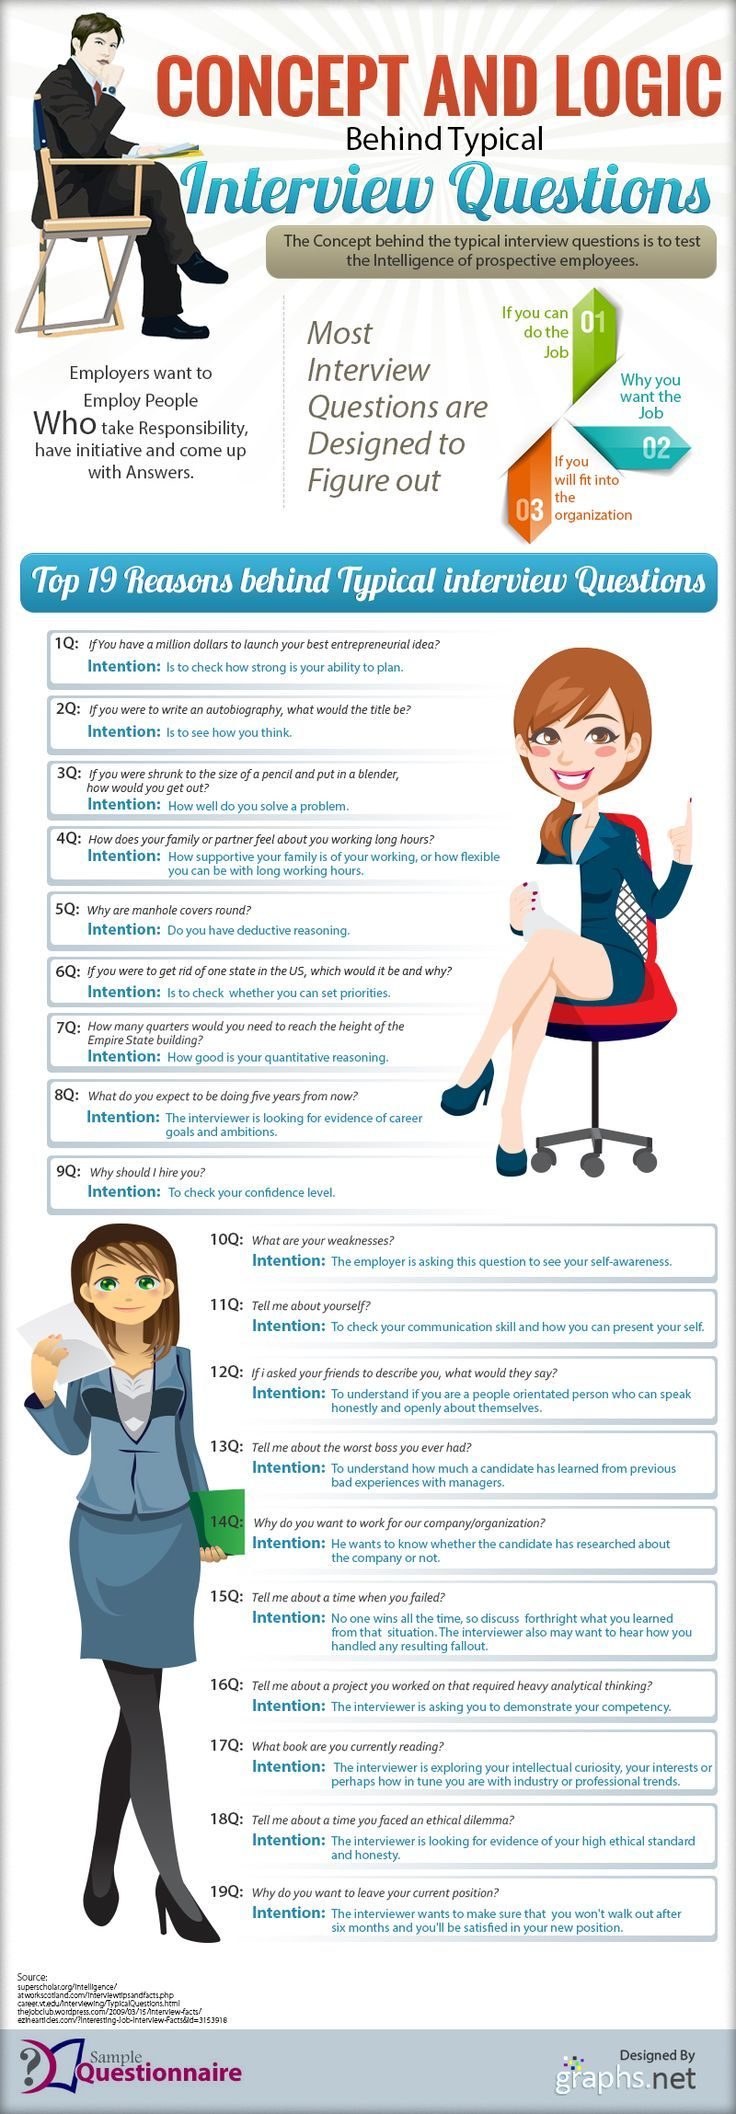 the logic behind common interview questions interview the login behind the most typical interview questions